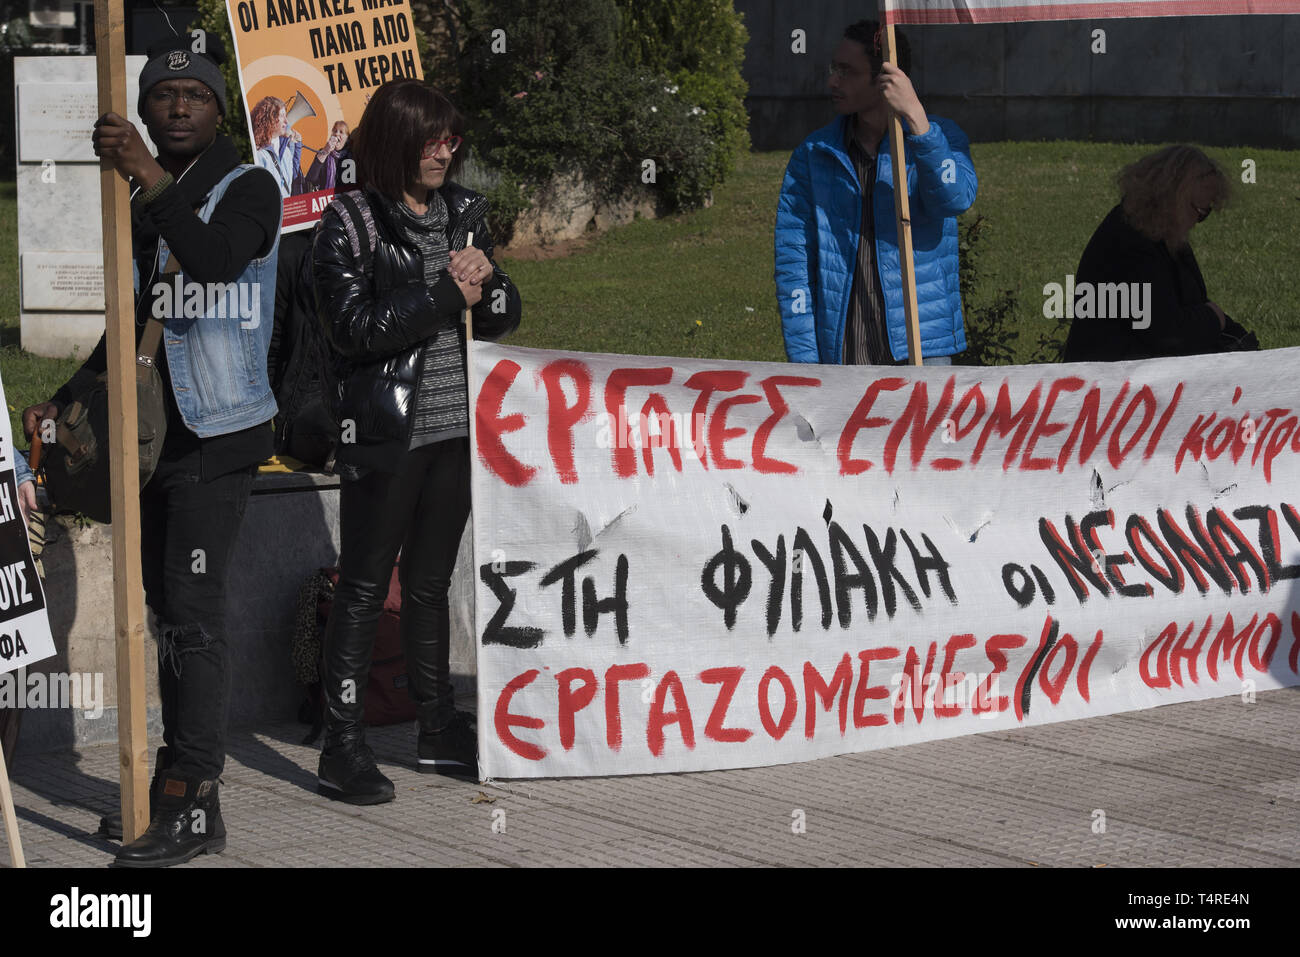 Athens, Greece. 18th Apr, 2019. Marking four years since the trial of the Greek neo-nazi party begun, leftist and anti-racism organizations protest outside the court were the trial is taking place and demand conviction of the neo-nazi party. The trial of Golden Dawn with almost 70 defendants, accusations such as criminal organization, murder, possession of weapons and racist violence, begun in April 2015 and is still ongoing. Credit: Nikolas Georgiou/ZUMA Wire/Alamy Live News Stock Photo